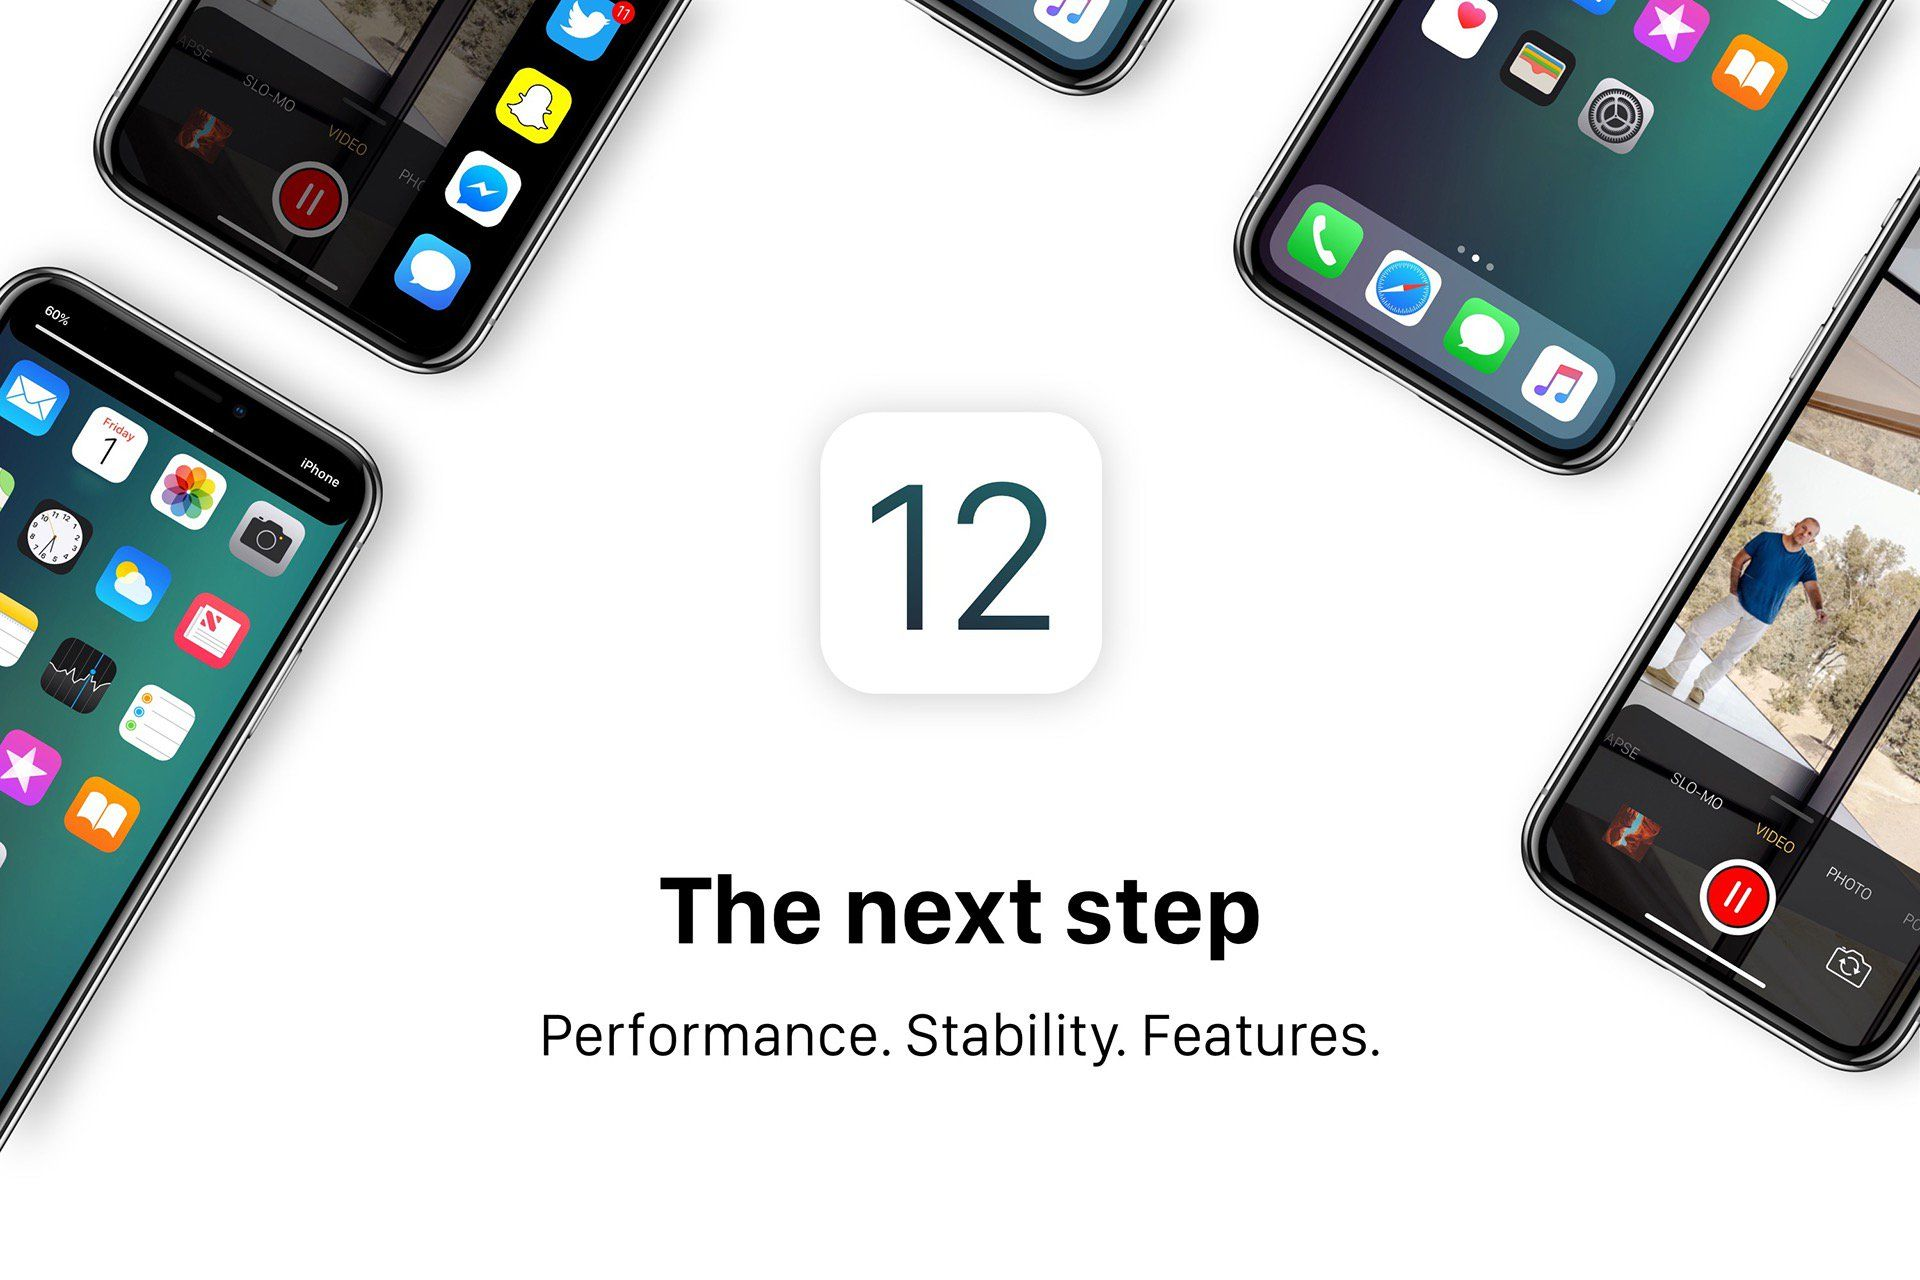 This iOS 12 Concept Imagines a Guest Mode, iPhone Split